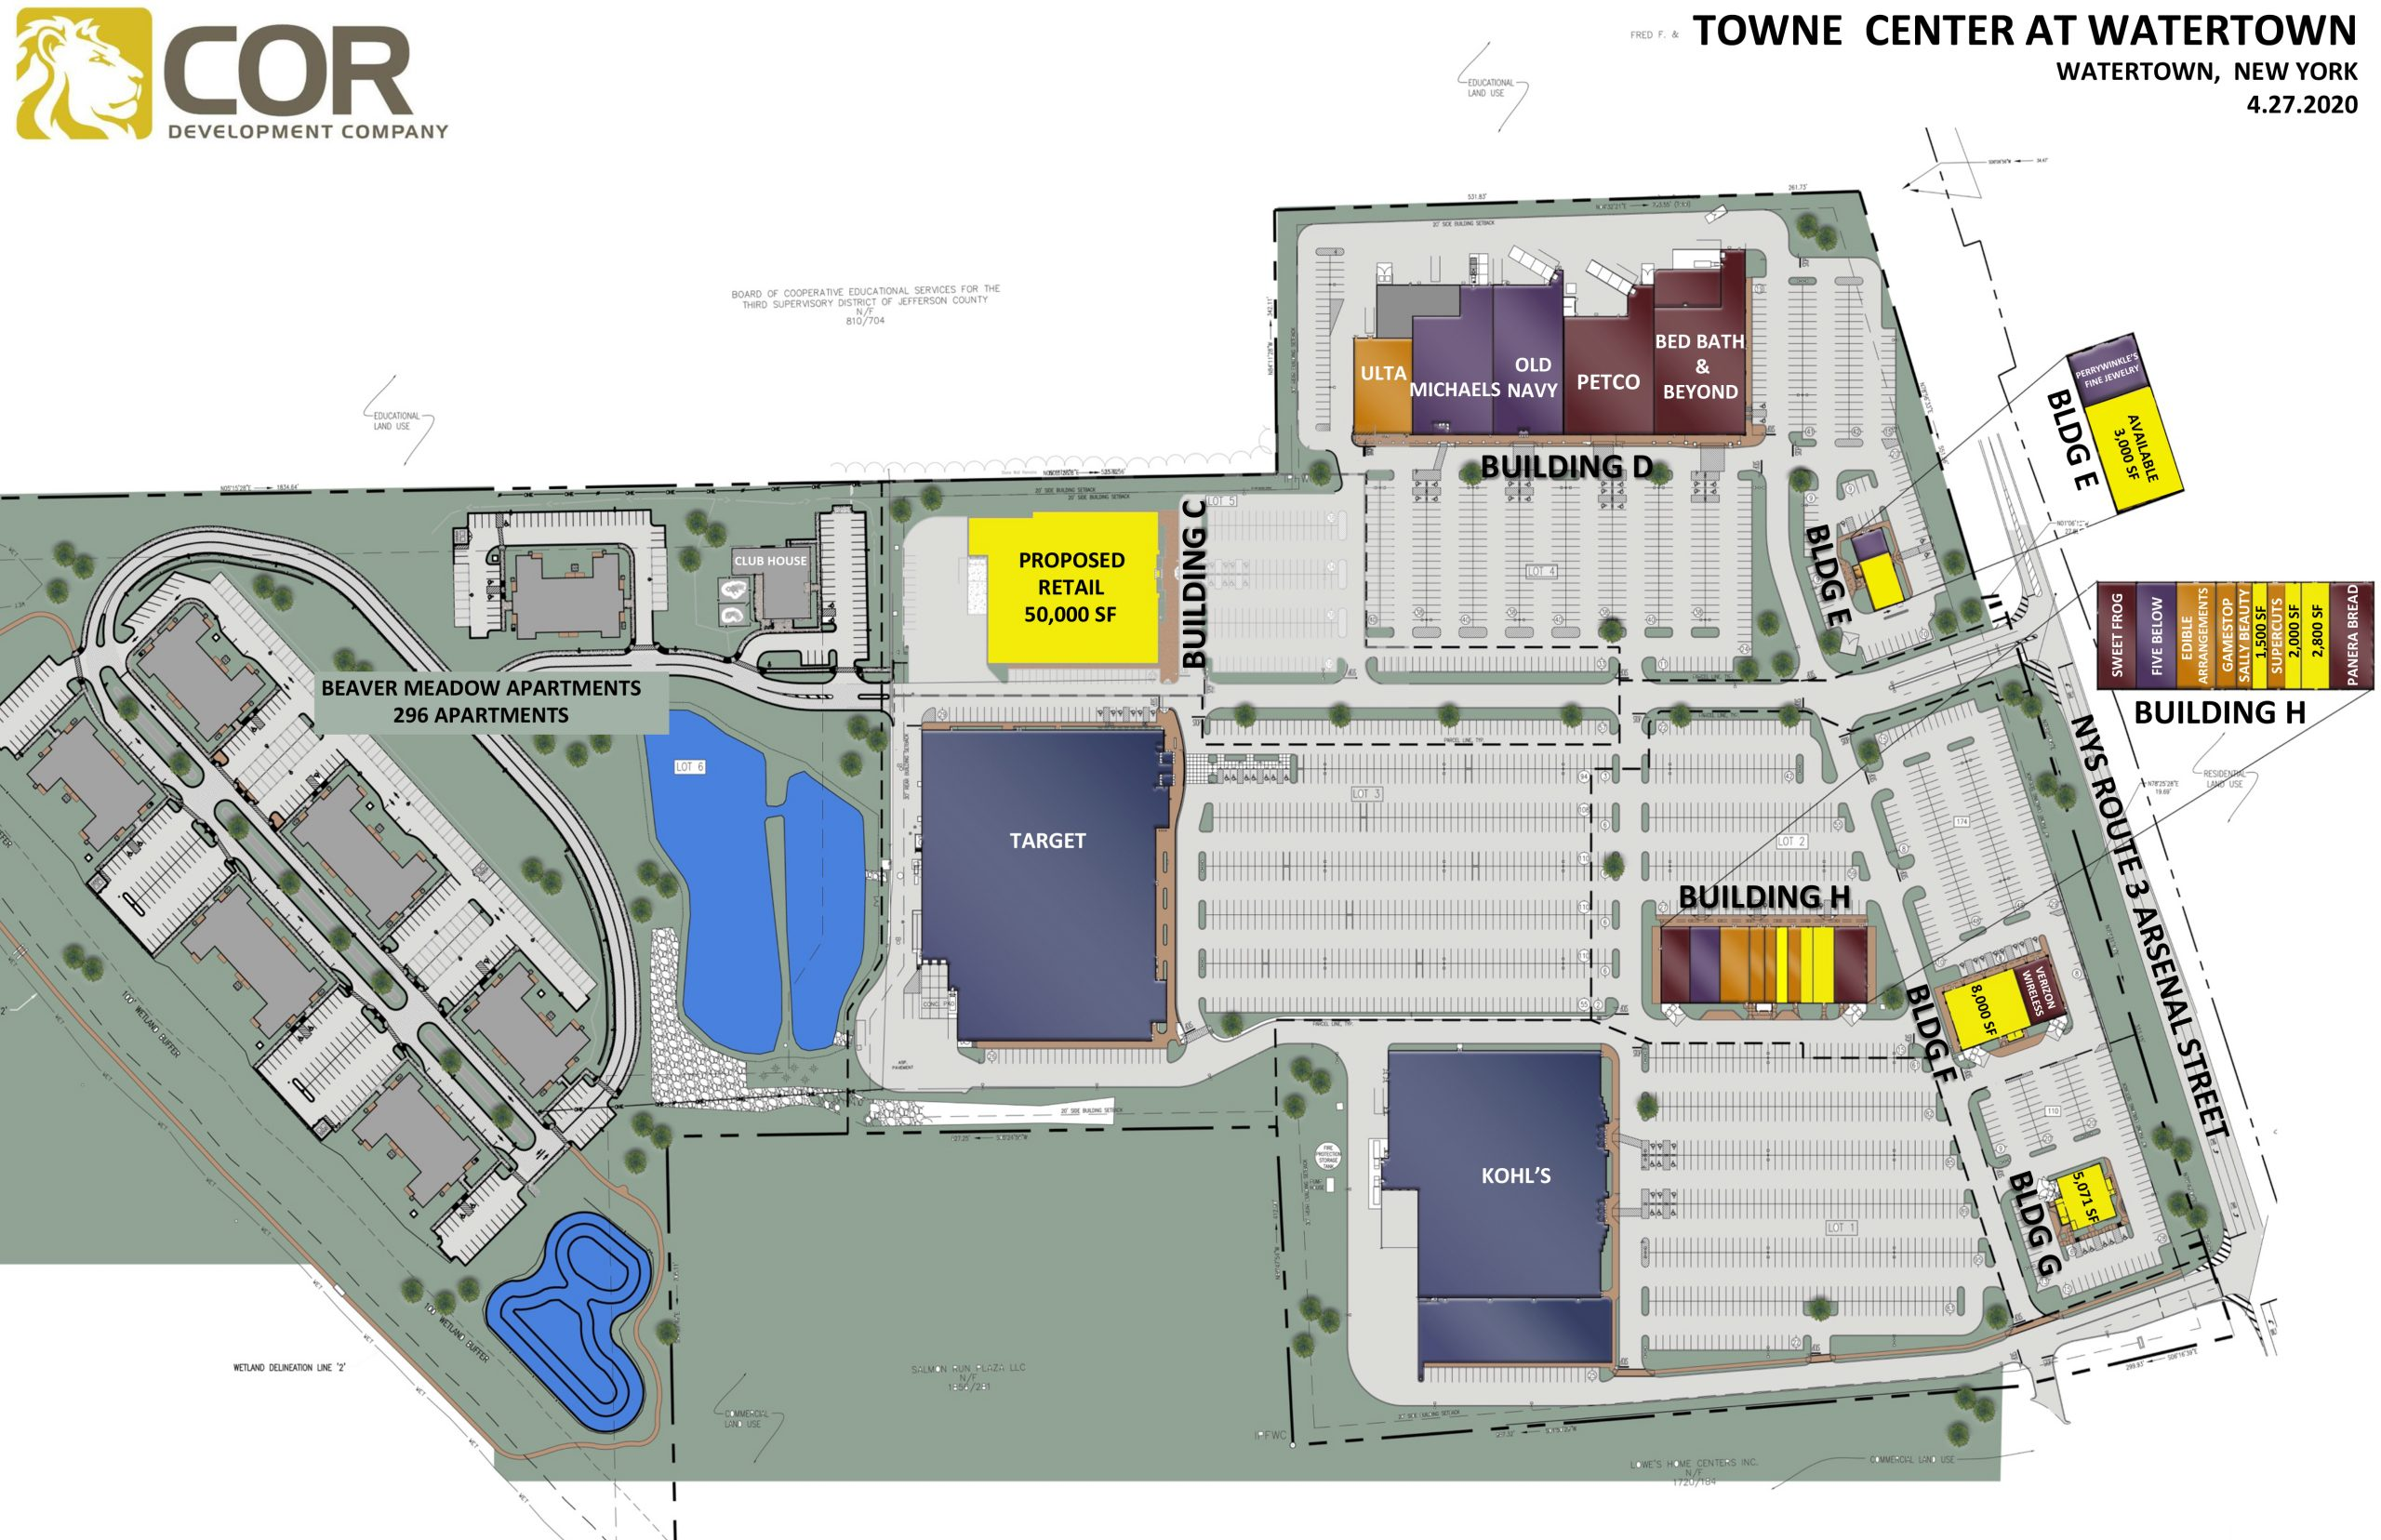 F Towne Center at Watertown MASTER SITE PLAN scaled - Towne Center at Watertown – Watertown, NY